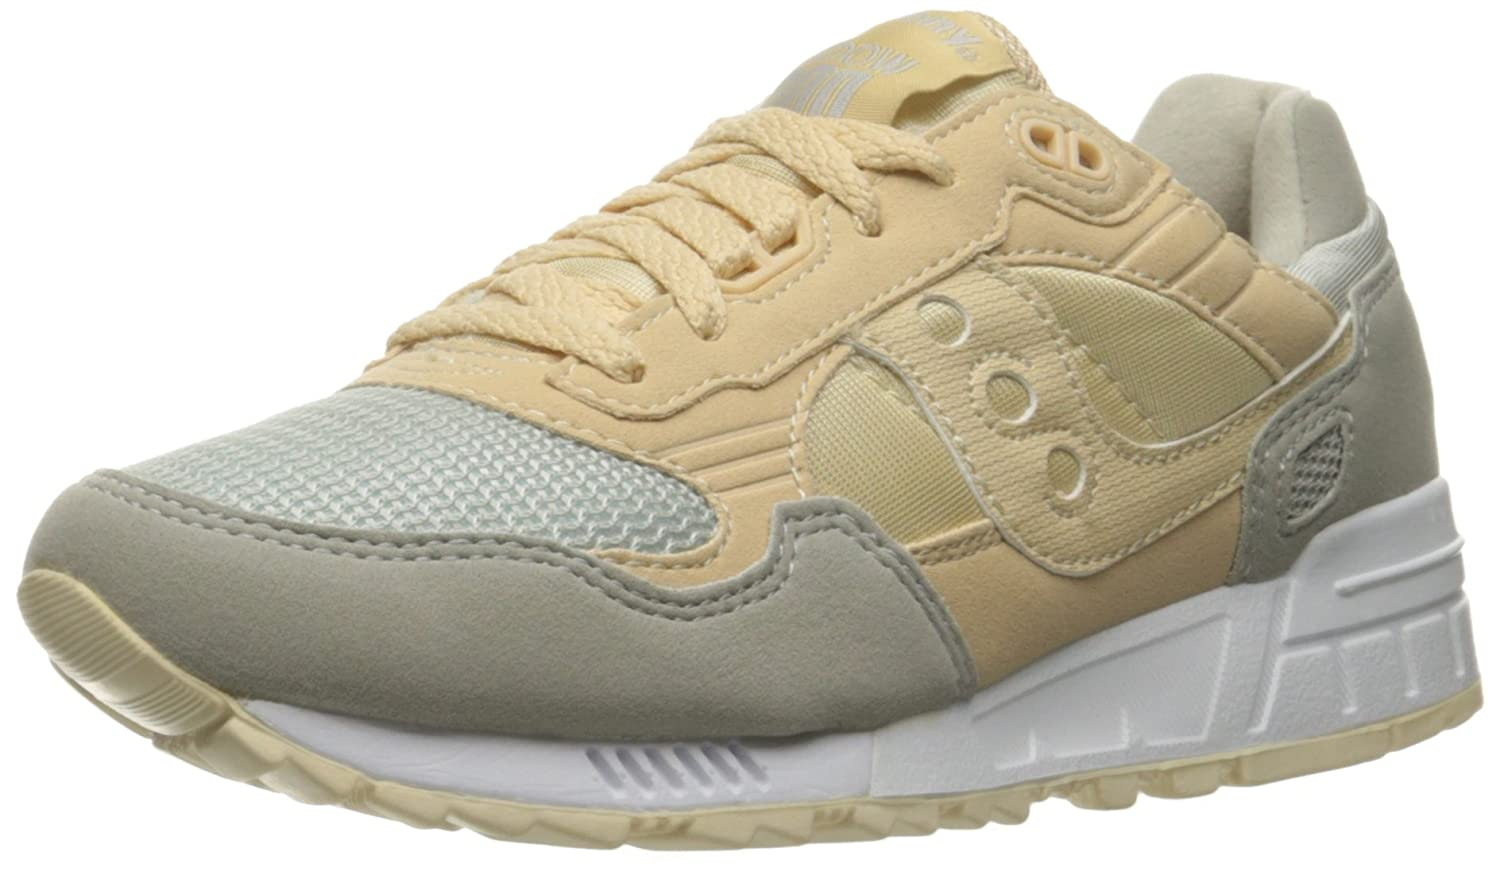 Saucony Originals Women's Shadow 5000 Fashion Sneaker Road B0189NM6JM Road Sneaker Running 520e6c